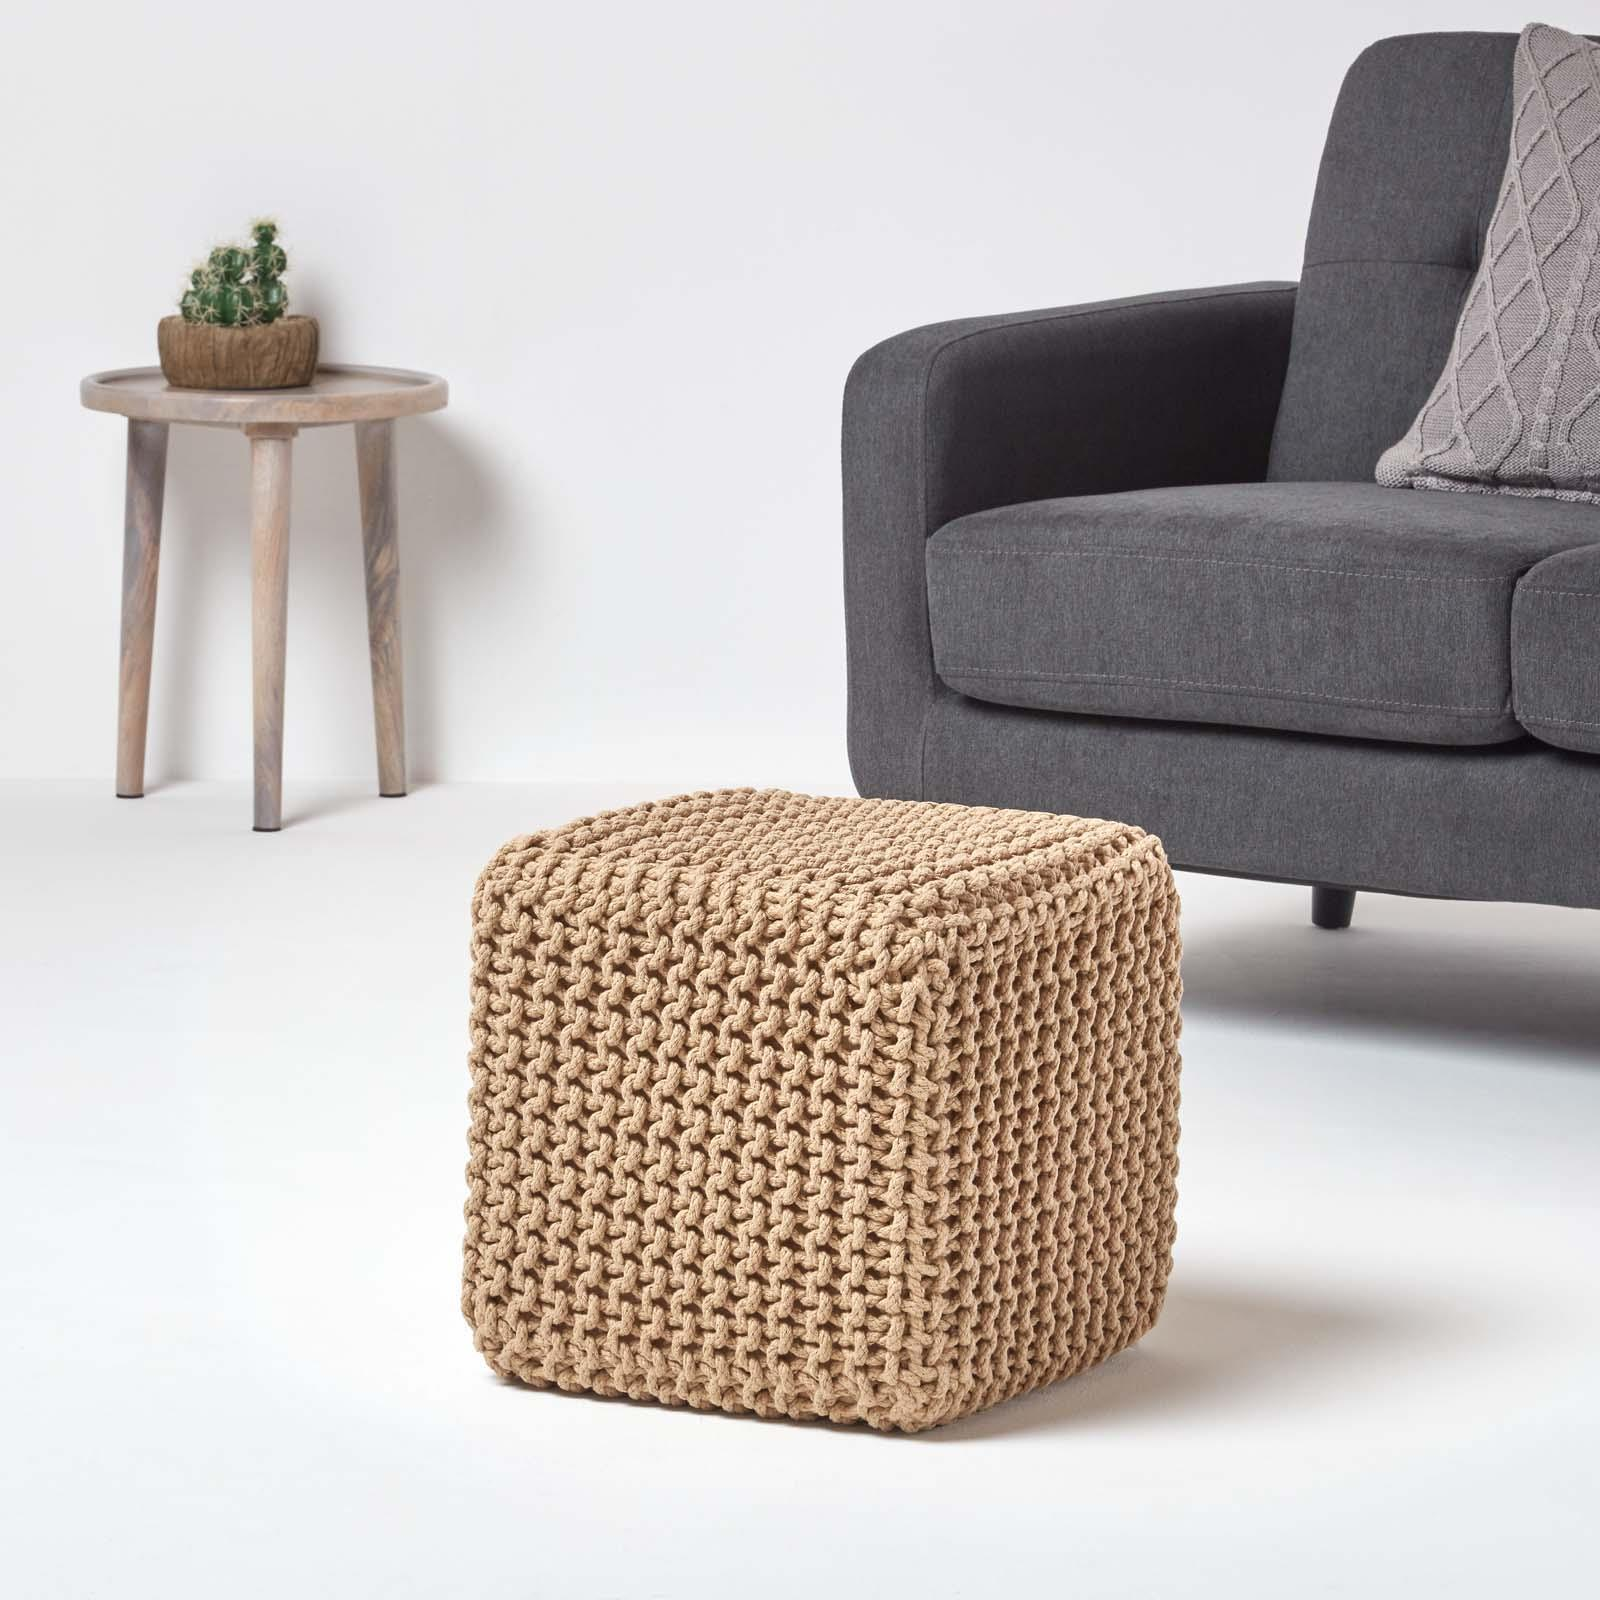 Hand-Knitted-100-Cotton-Pouffes-Round-Sphere-Or-Cube-Square-Chunky-Footstools thumbnail 75